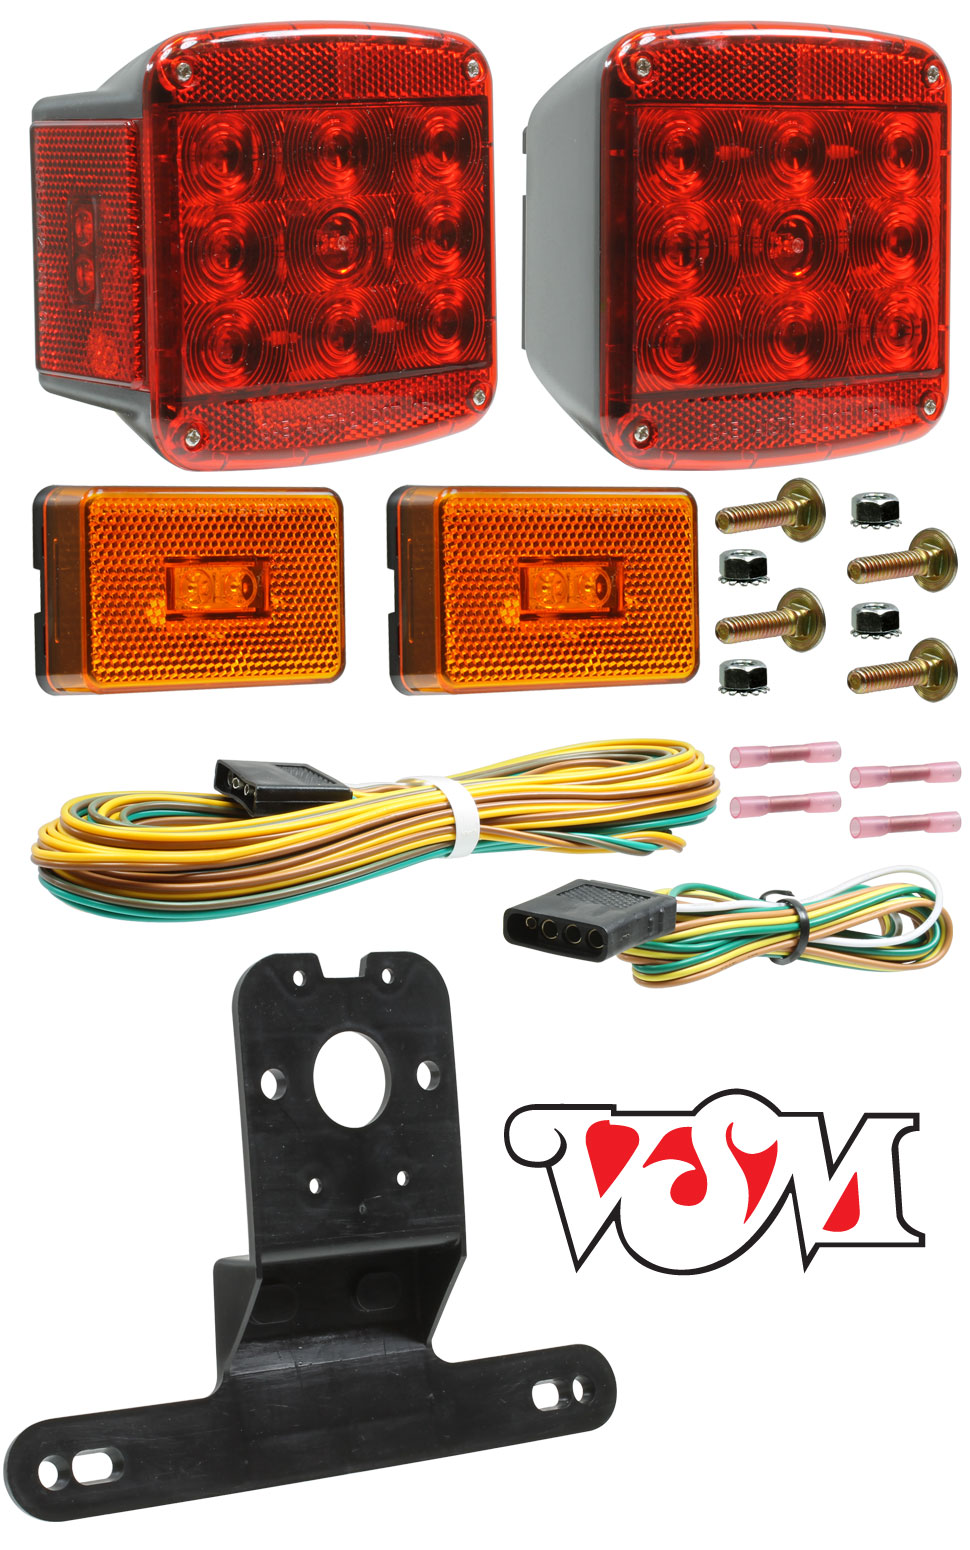 VSM5551DK LED Universal Trailer Light Kit with Sumbersible Lamps